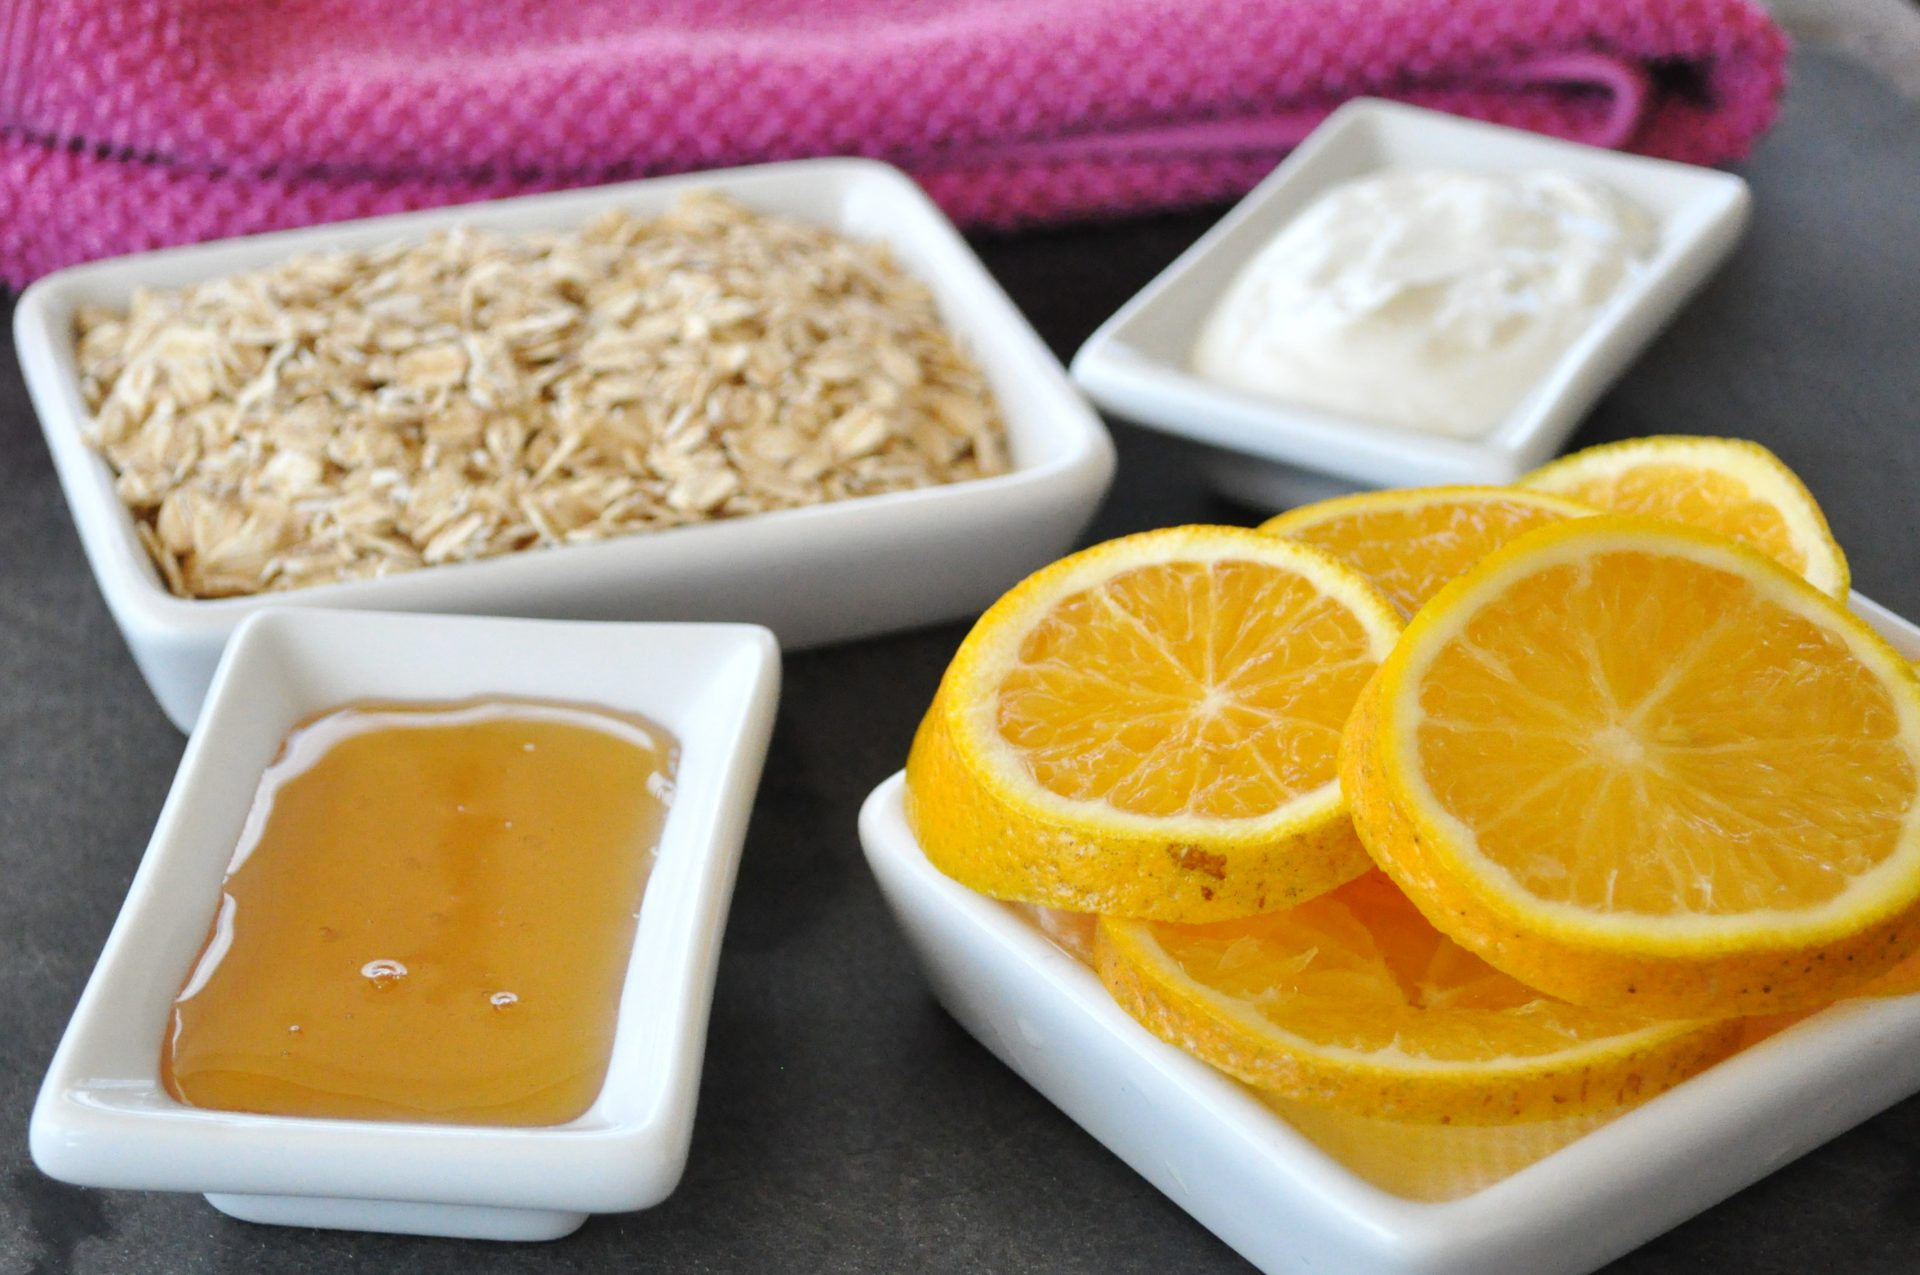 Moisturizing orange face mask ingredients laid out in white bowls on table